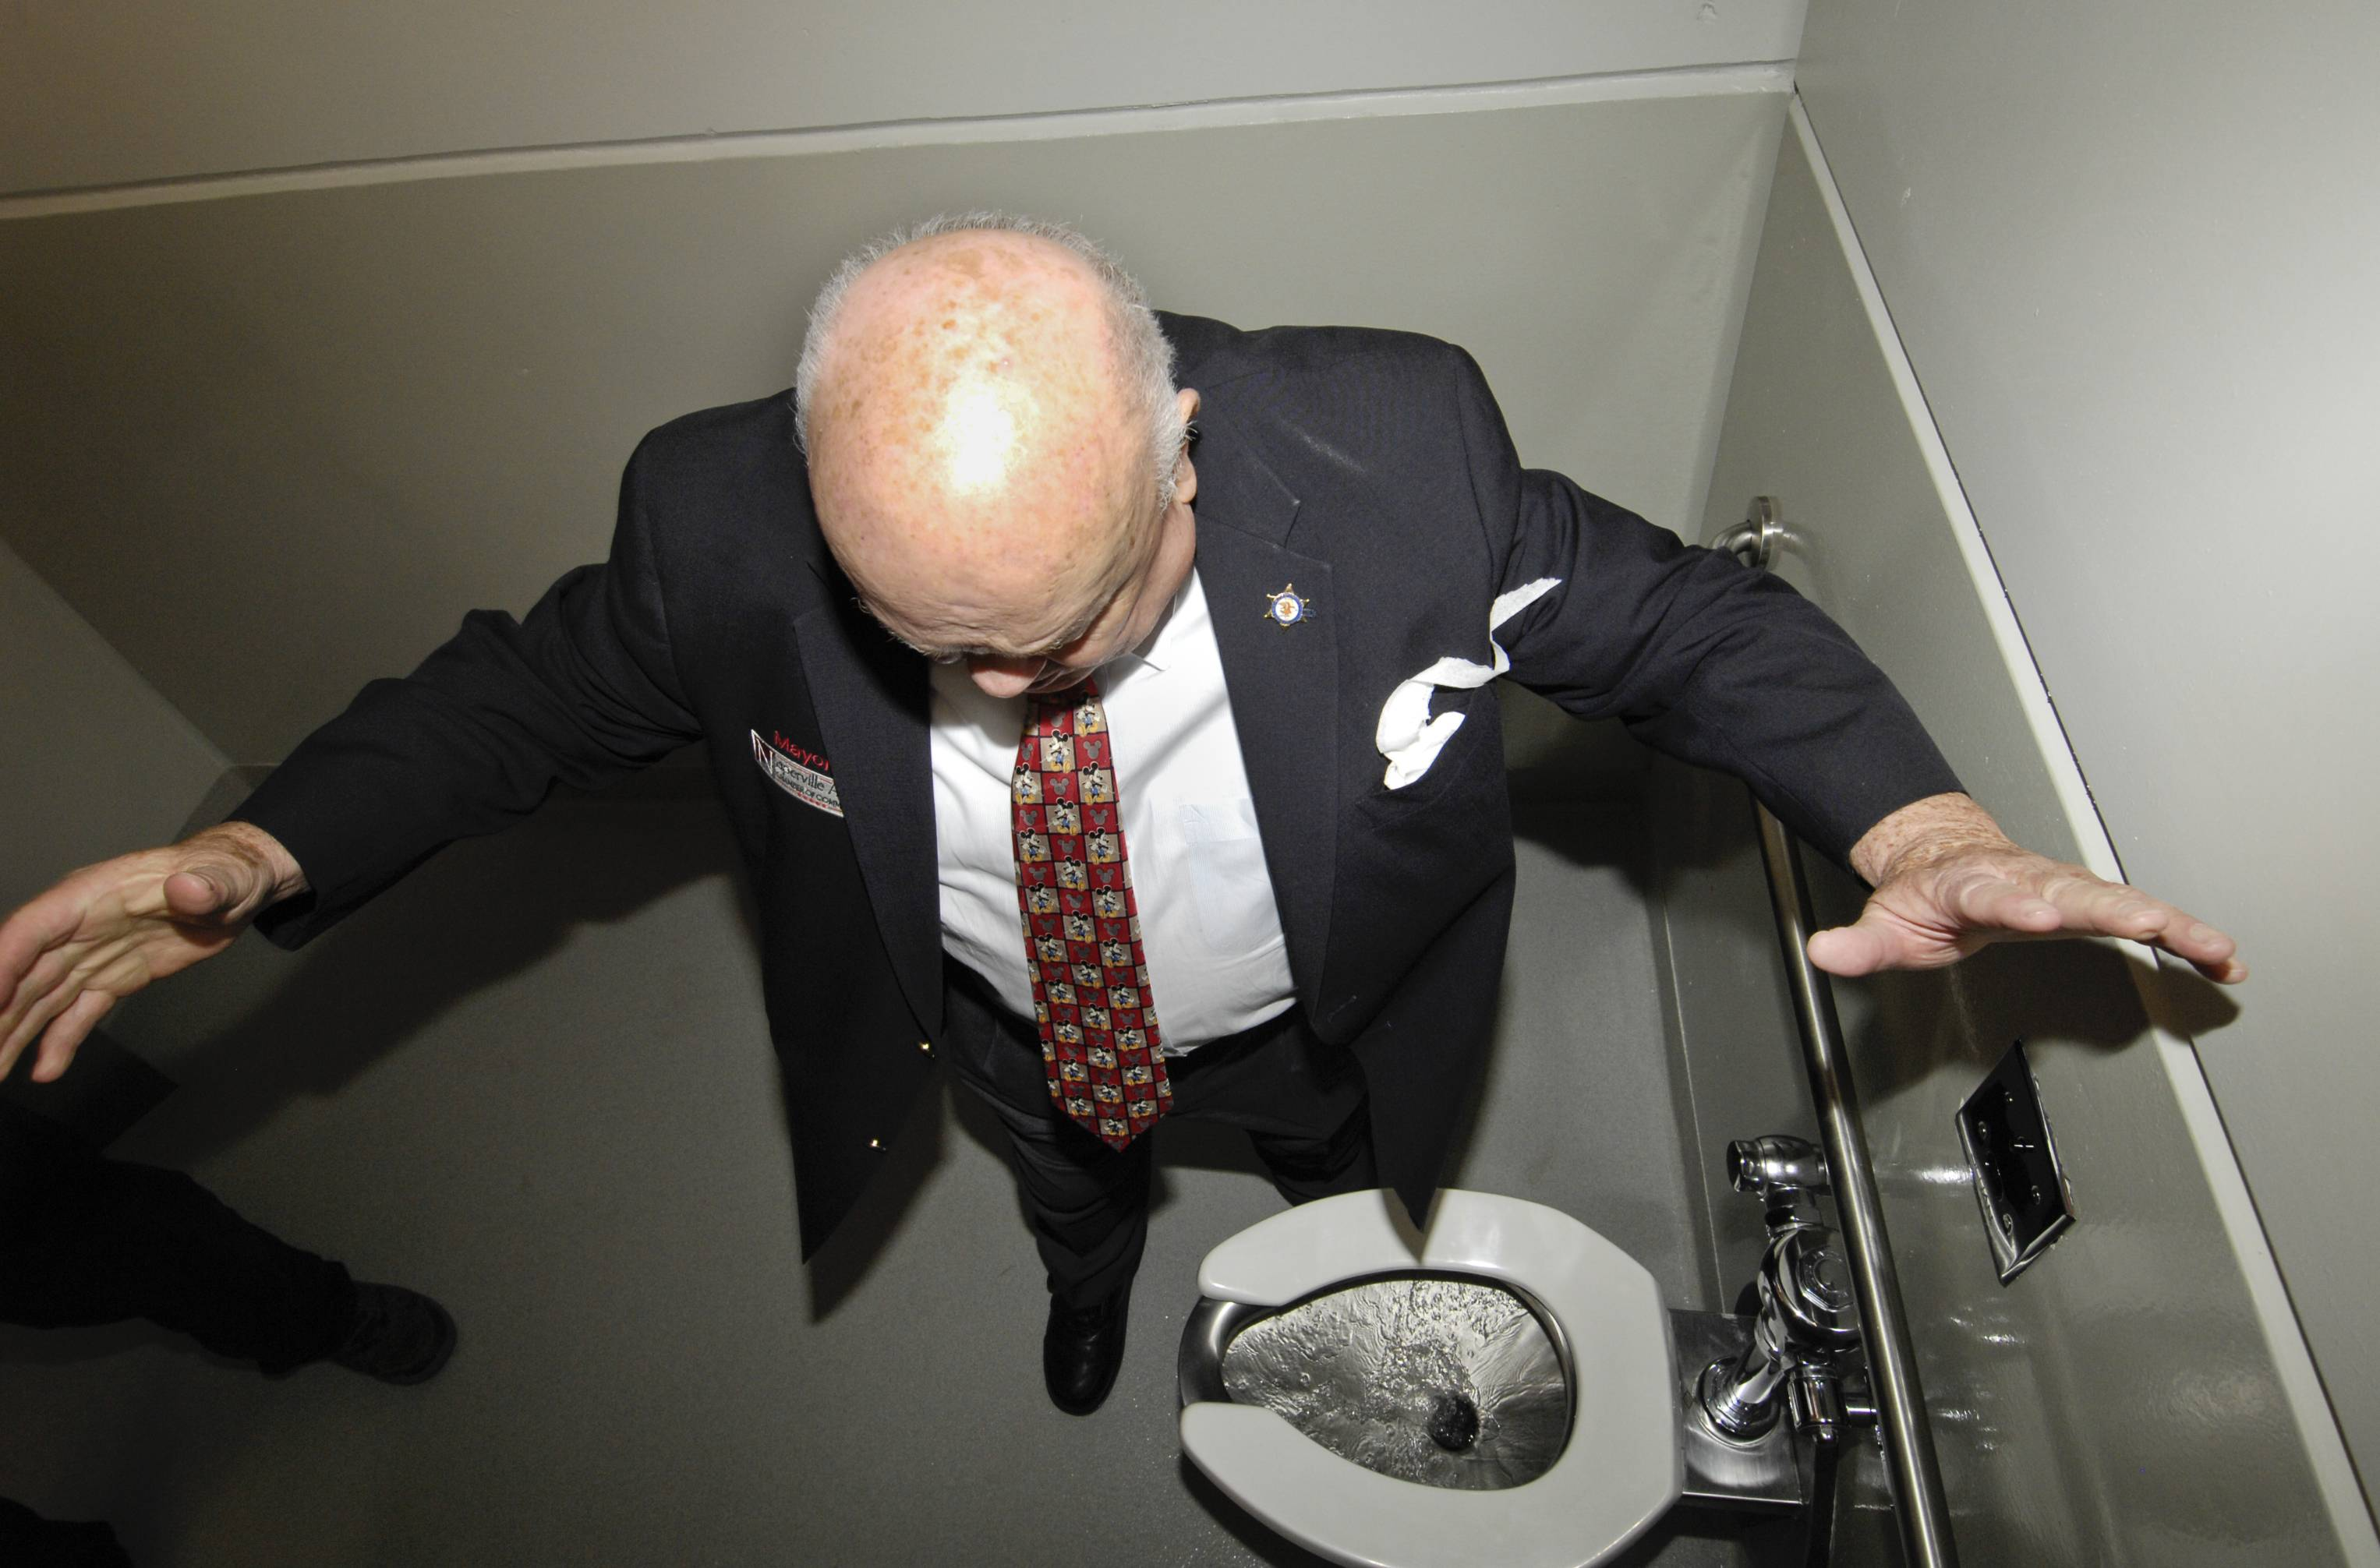 One of George Pradel's charms was that he never took himself too seriously. Here, he performs a ceremonial first flush for a new bathroom in Central Park.